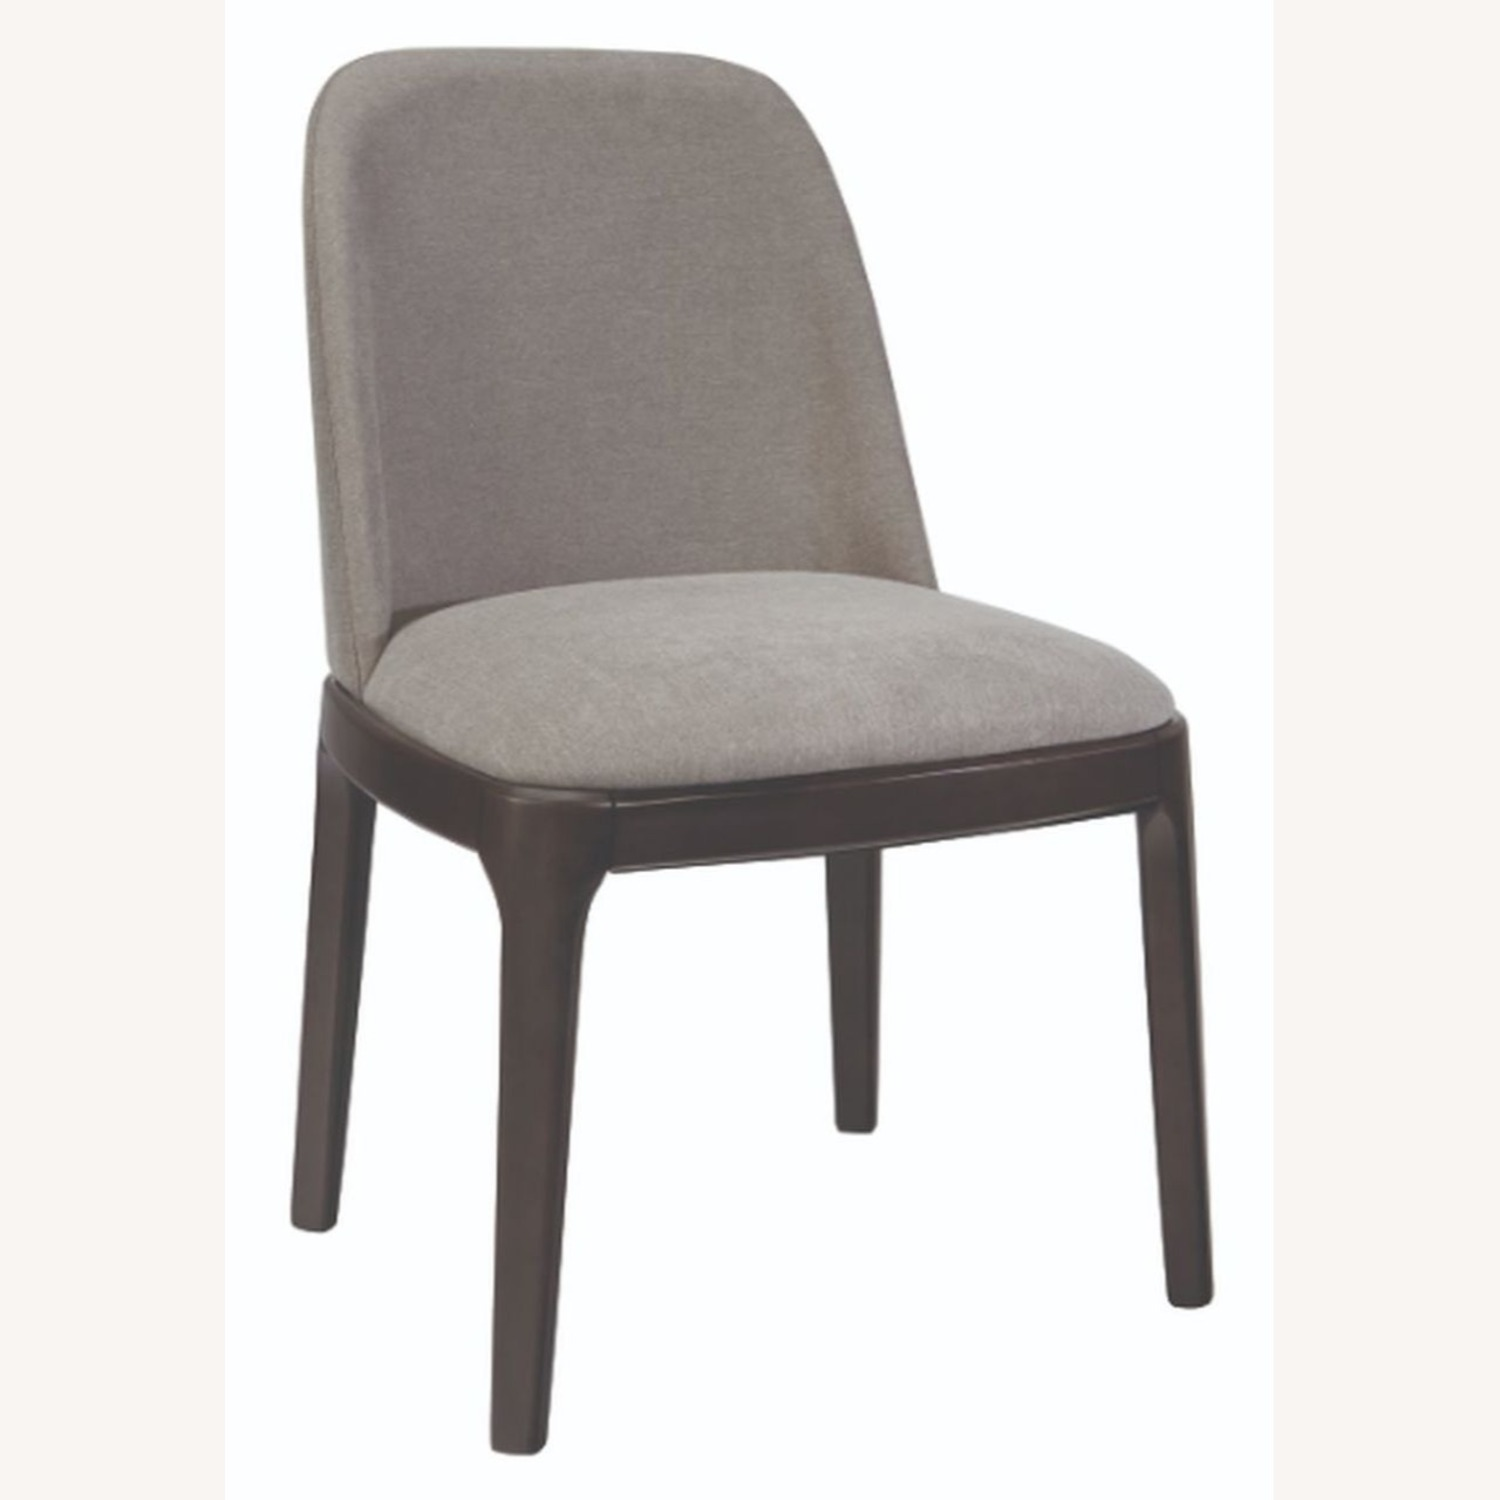 Contemporary Side Chair Upholstered In Grey Fabric - image-1